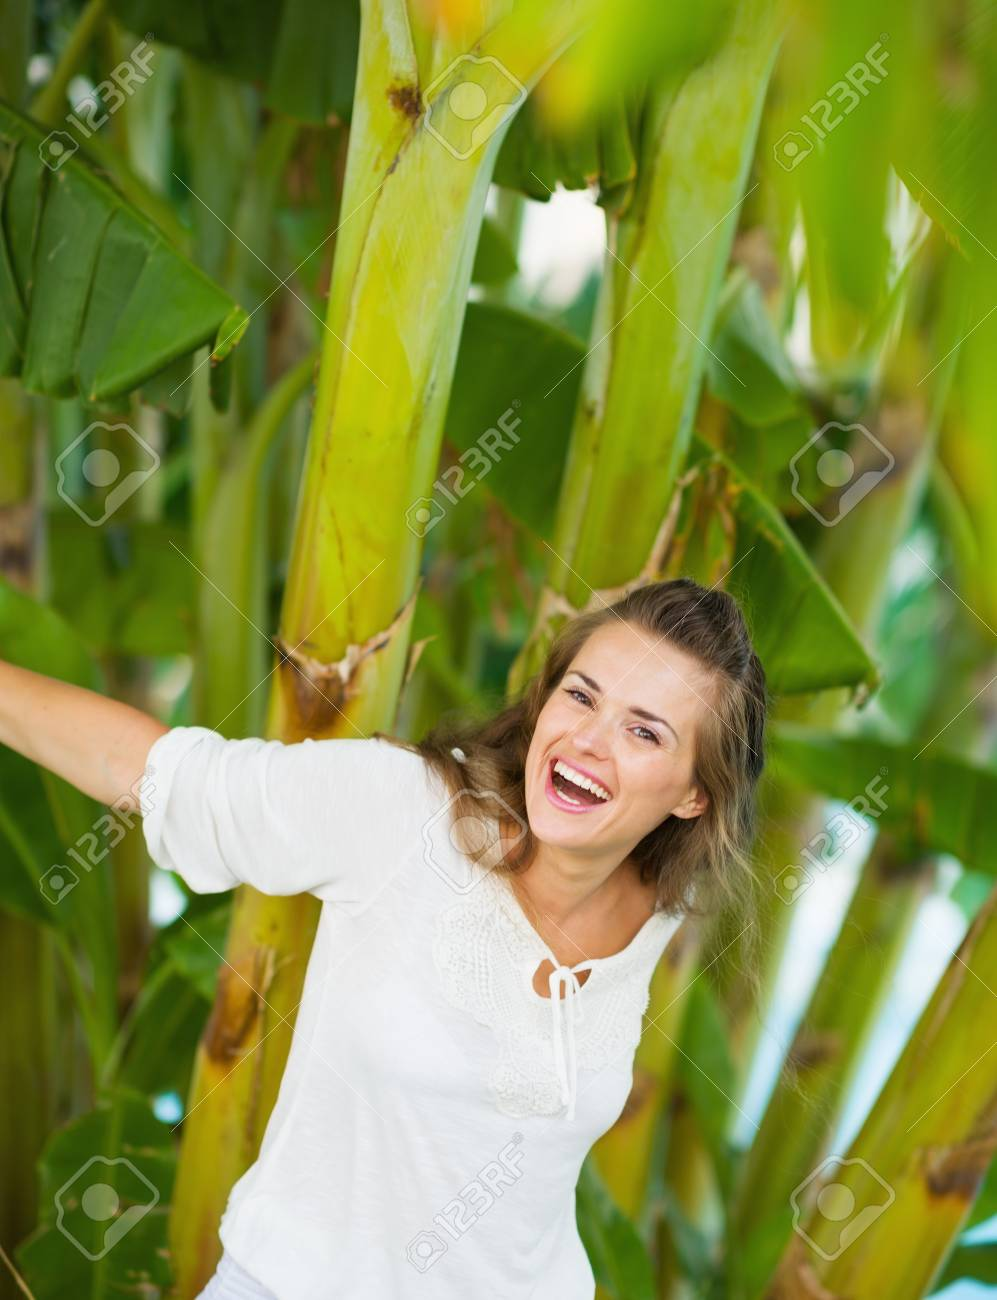 Laughing young woman among tropical palms Stock Photo - 17283113